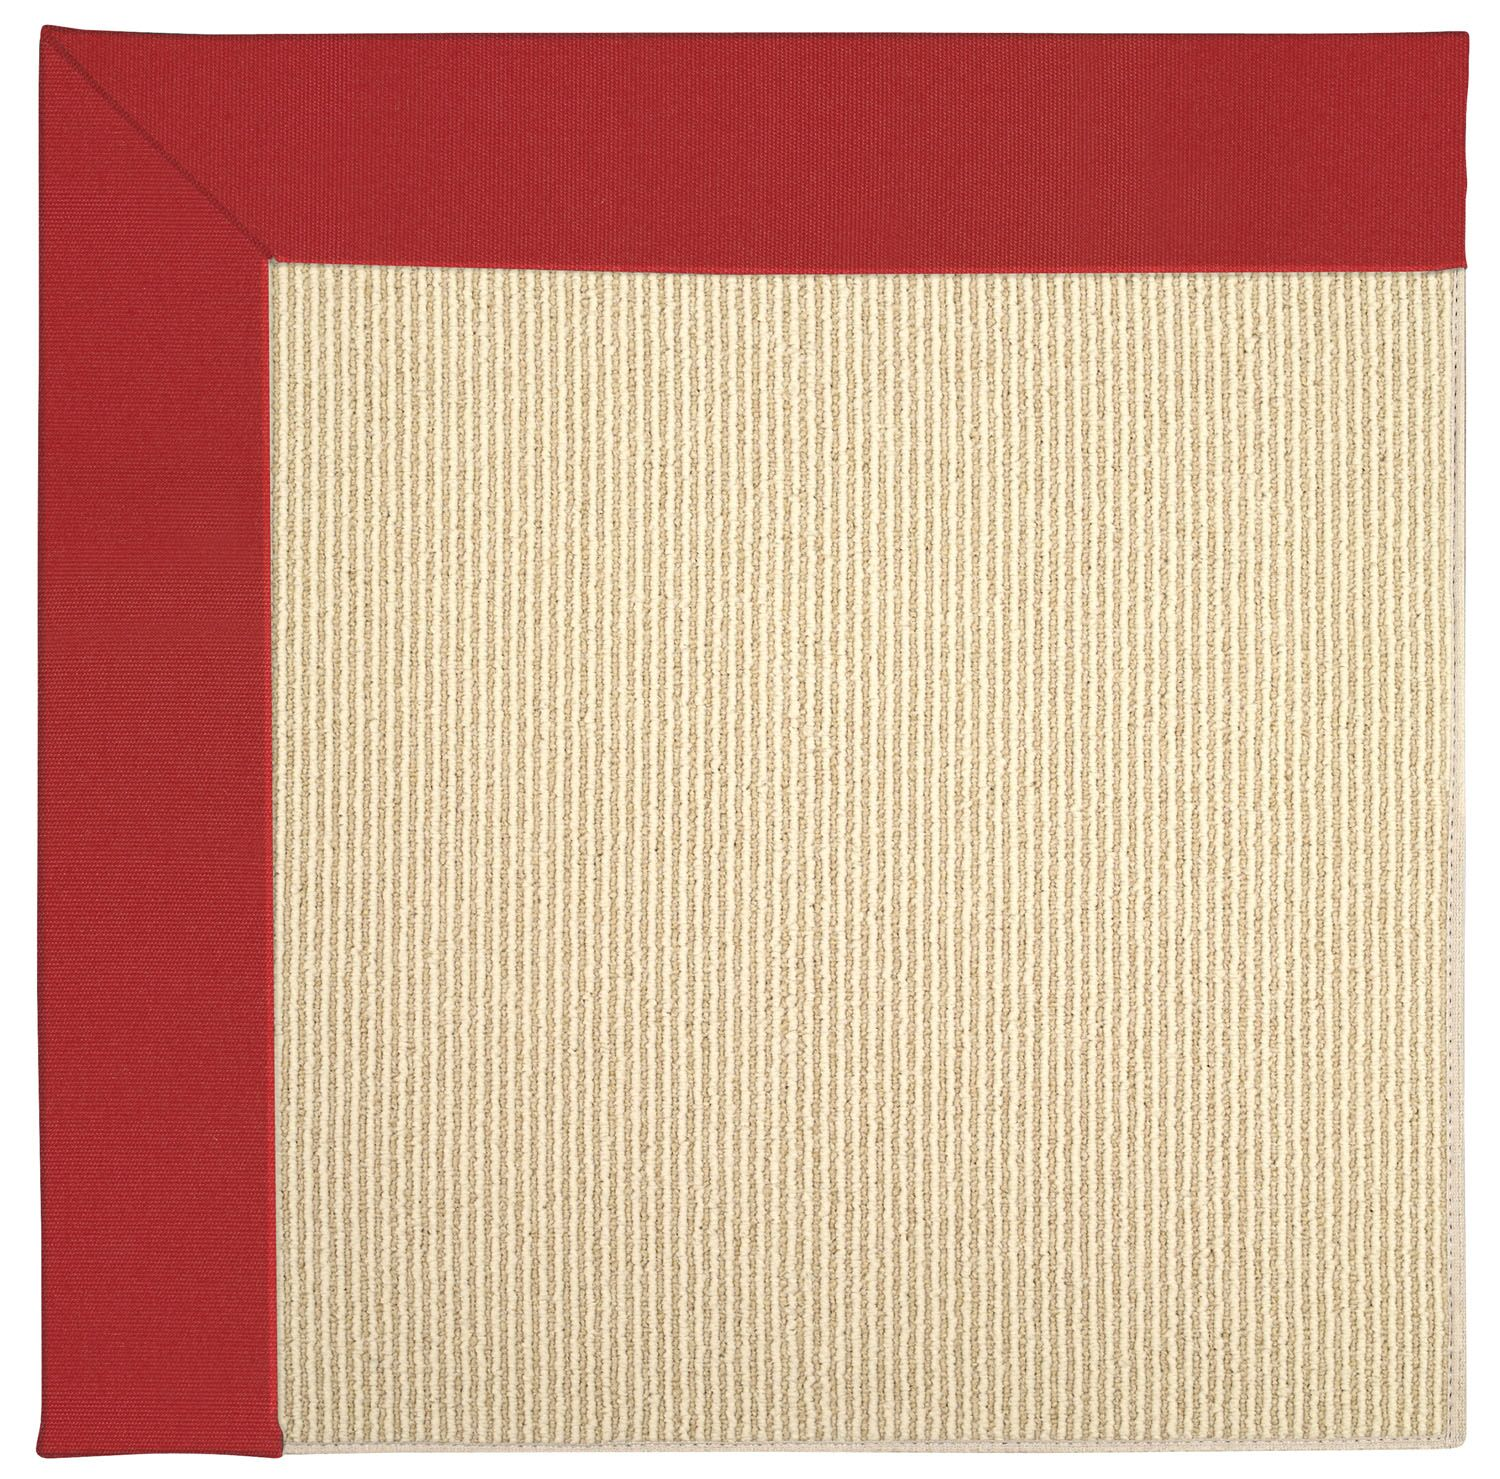 Lisle Machine Tufted Red/Beige Indoor/Outdoor Area Rug Rug Size: Square 4'